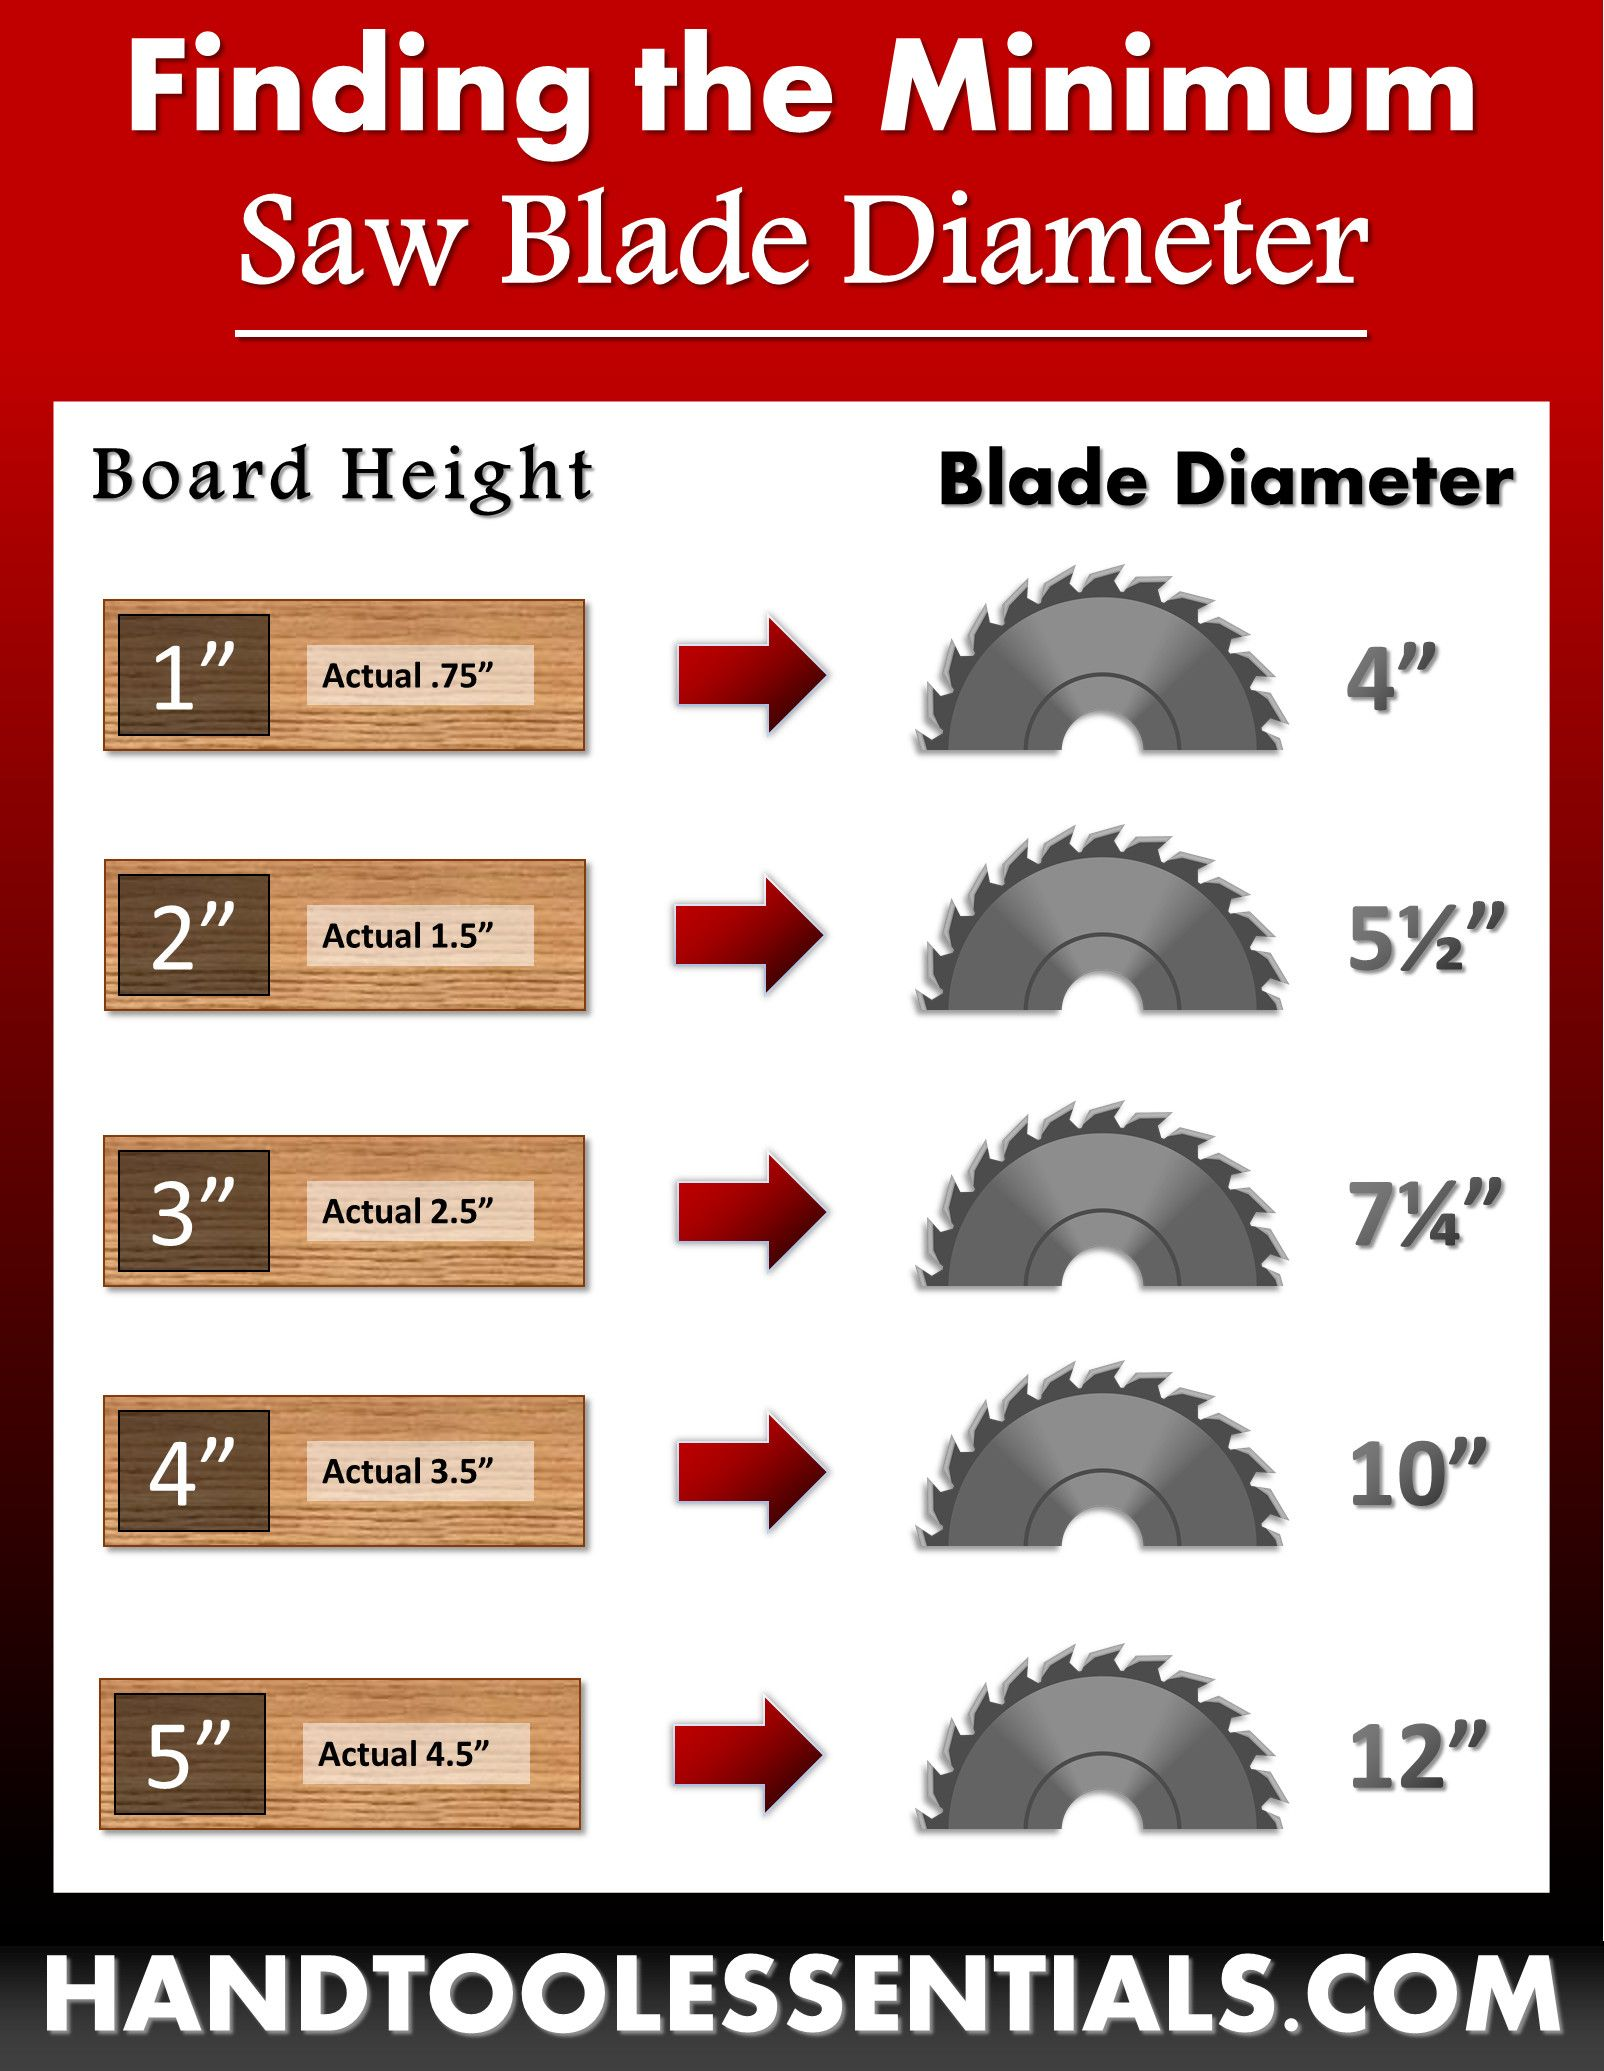 Woodworking Saw Blade Size Guide Circular Saws Miters Table Saws Table Saw Blades Saw Blade Circular Saw Table